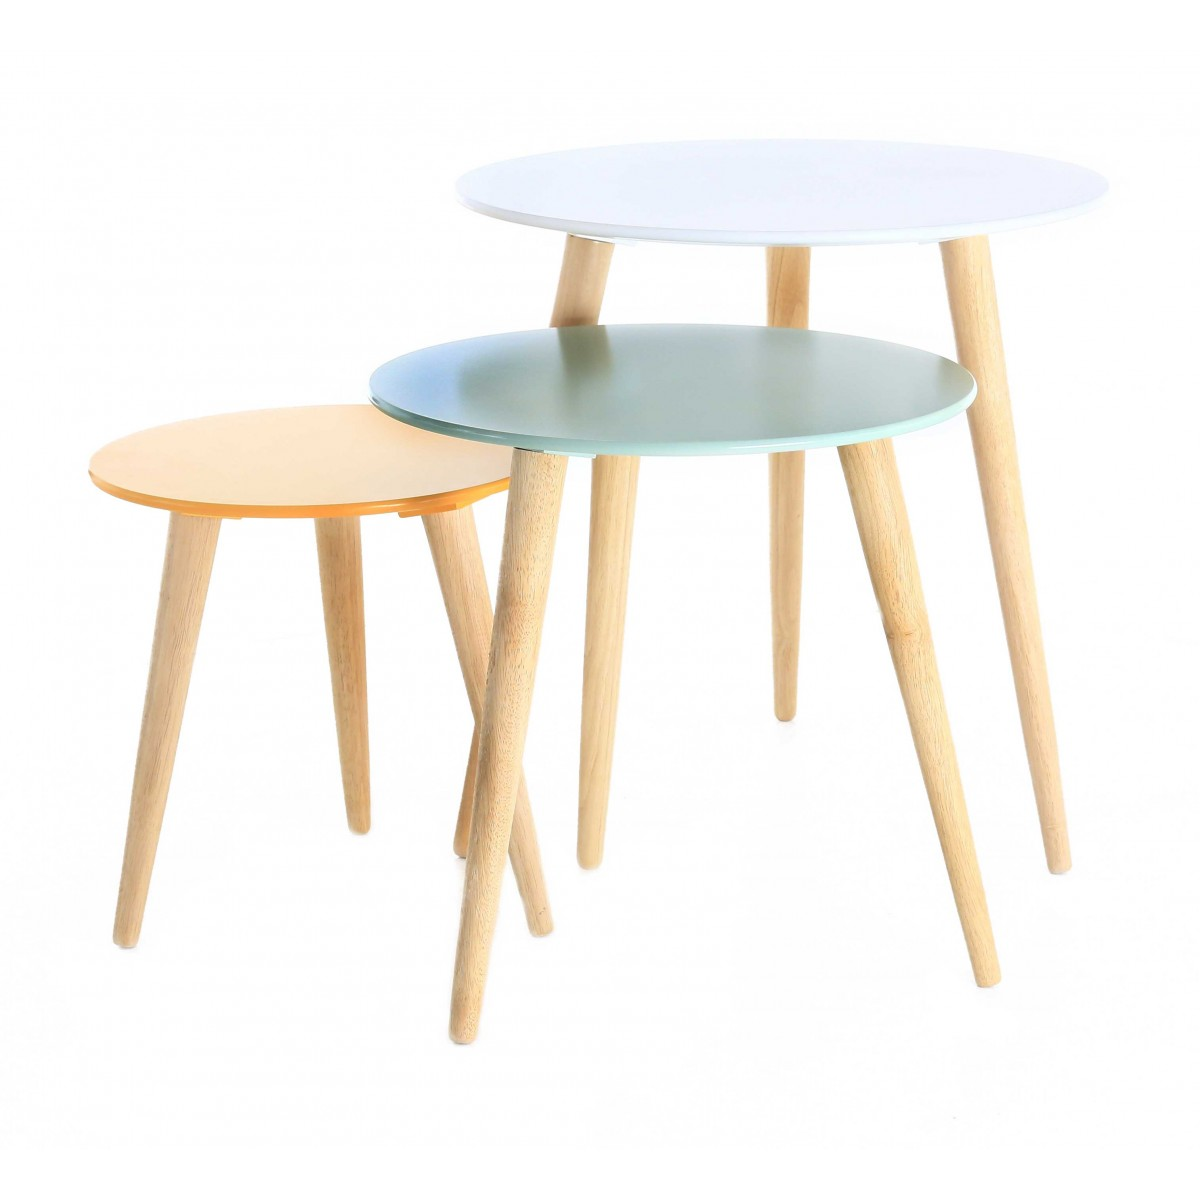 Set de 3 tables gigognes rondes scandinaves zago store for Table blanche et bois